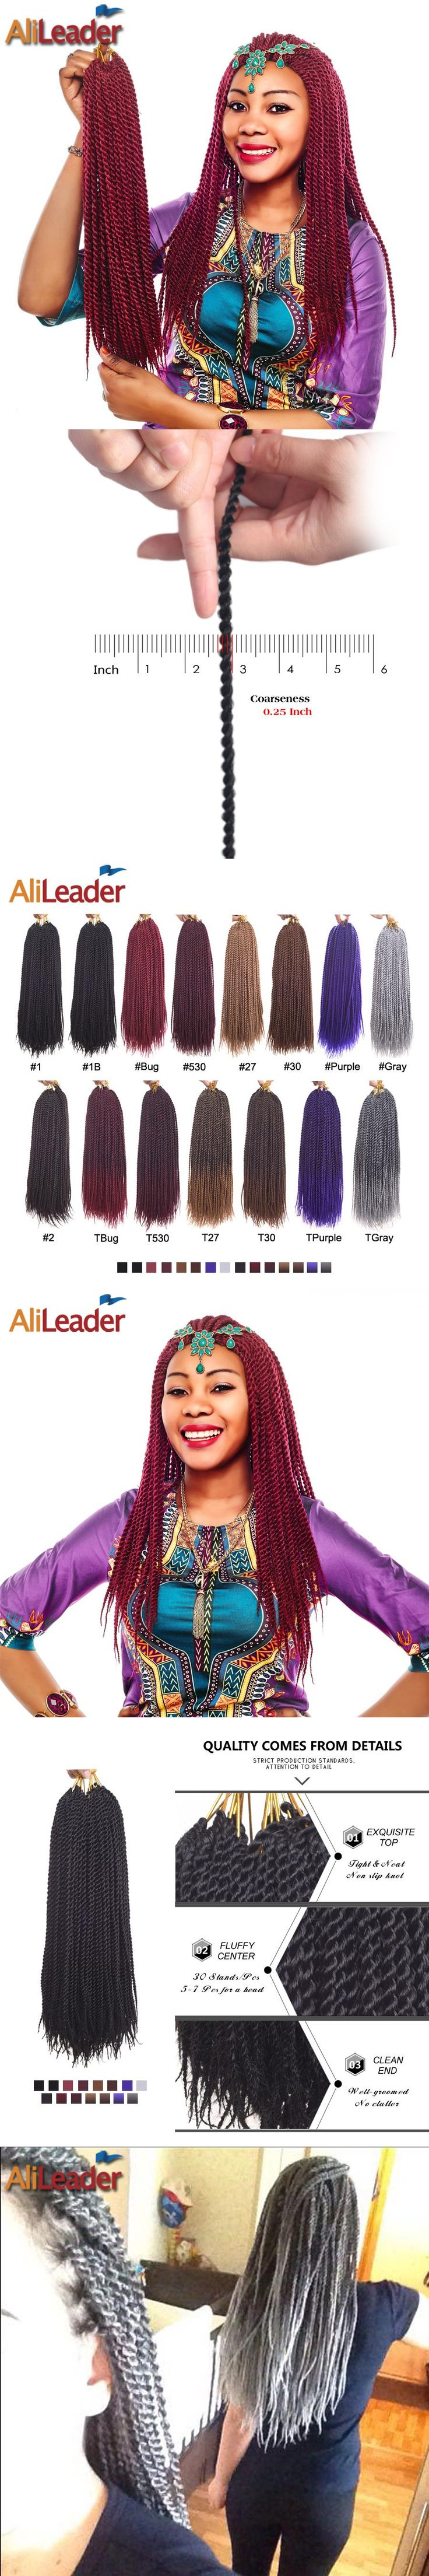 """AliLeader 30 Strands Small Senegalese Twist Crochet Hair Extensions 18"""" 15 Colors African Twist Braids Kanekalon Synthetic Hair"""